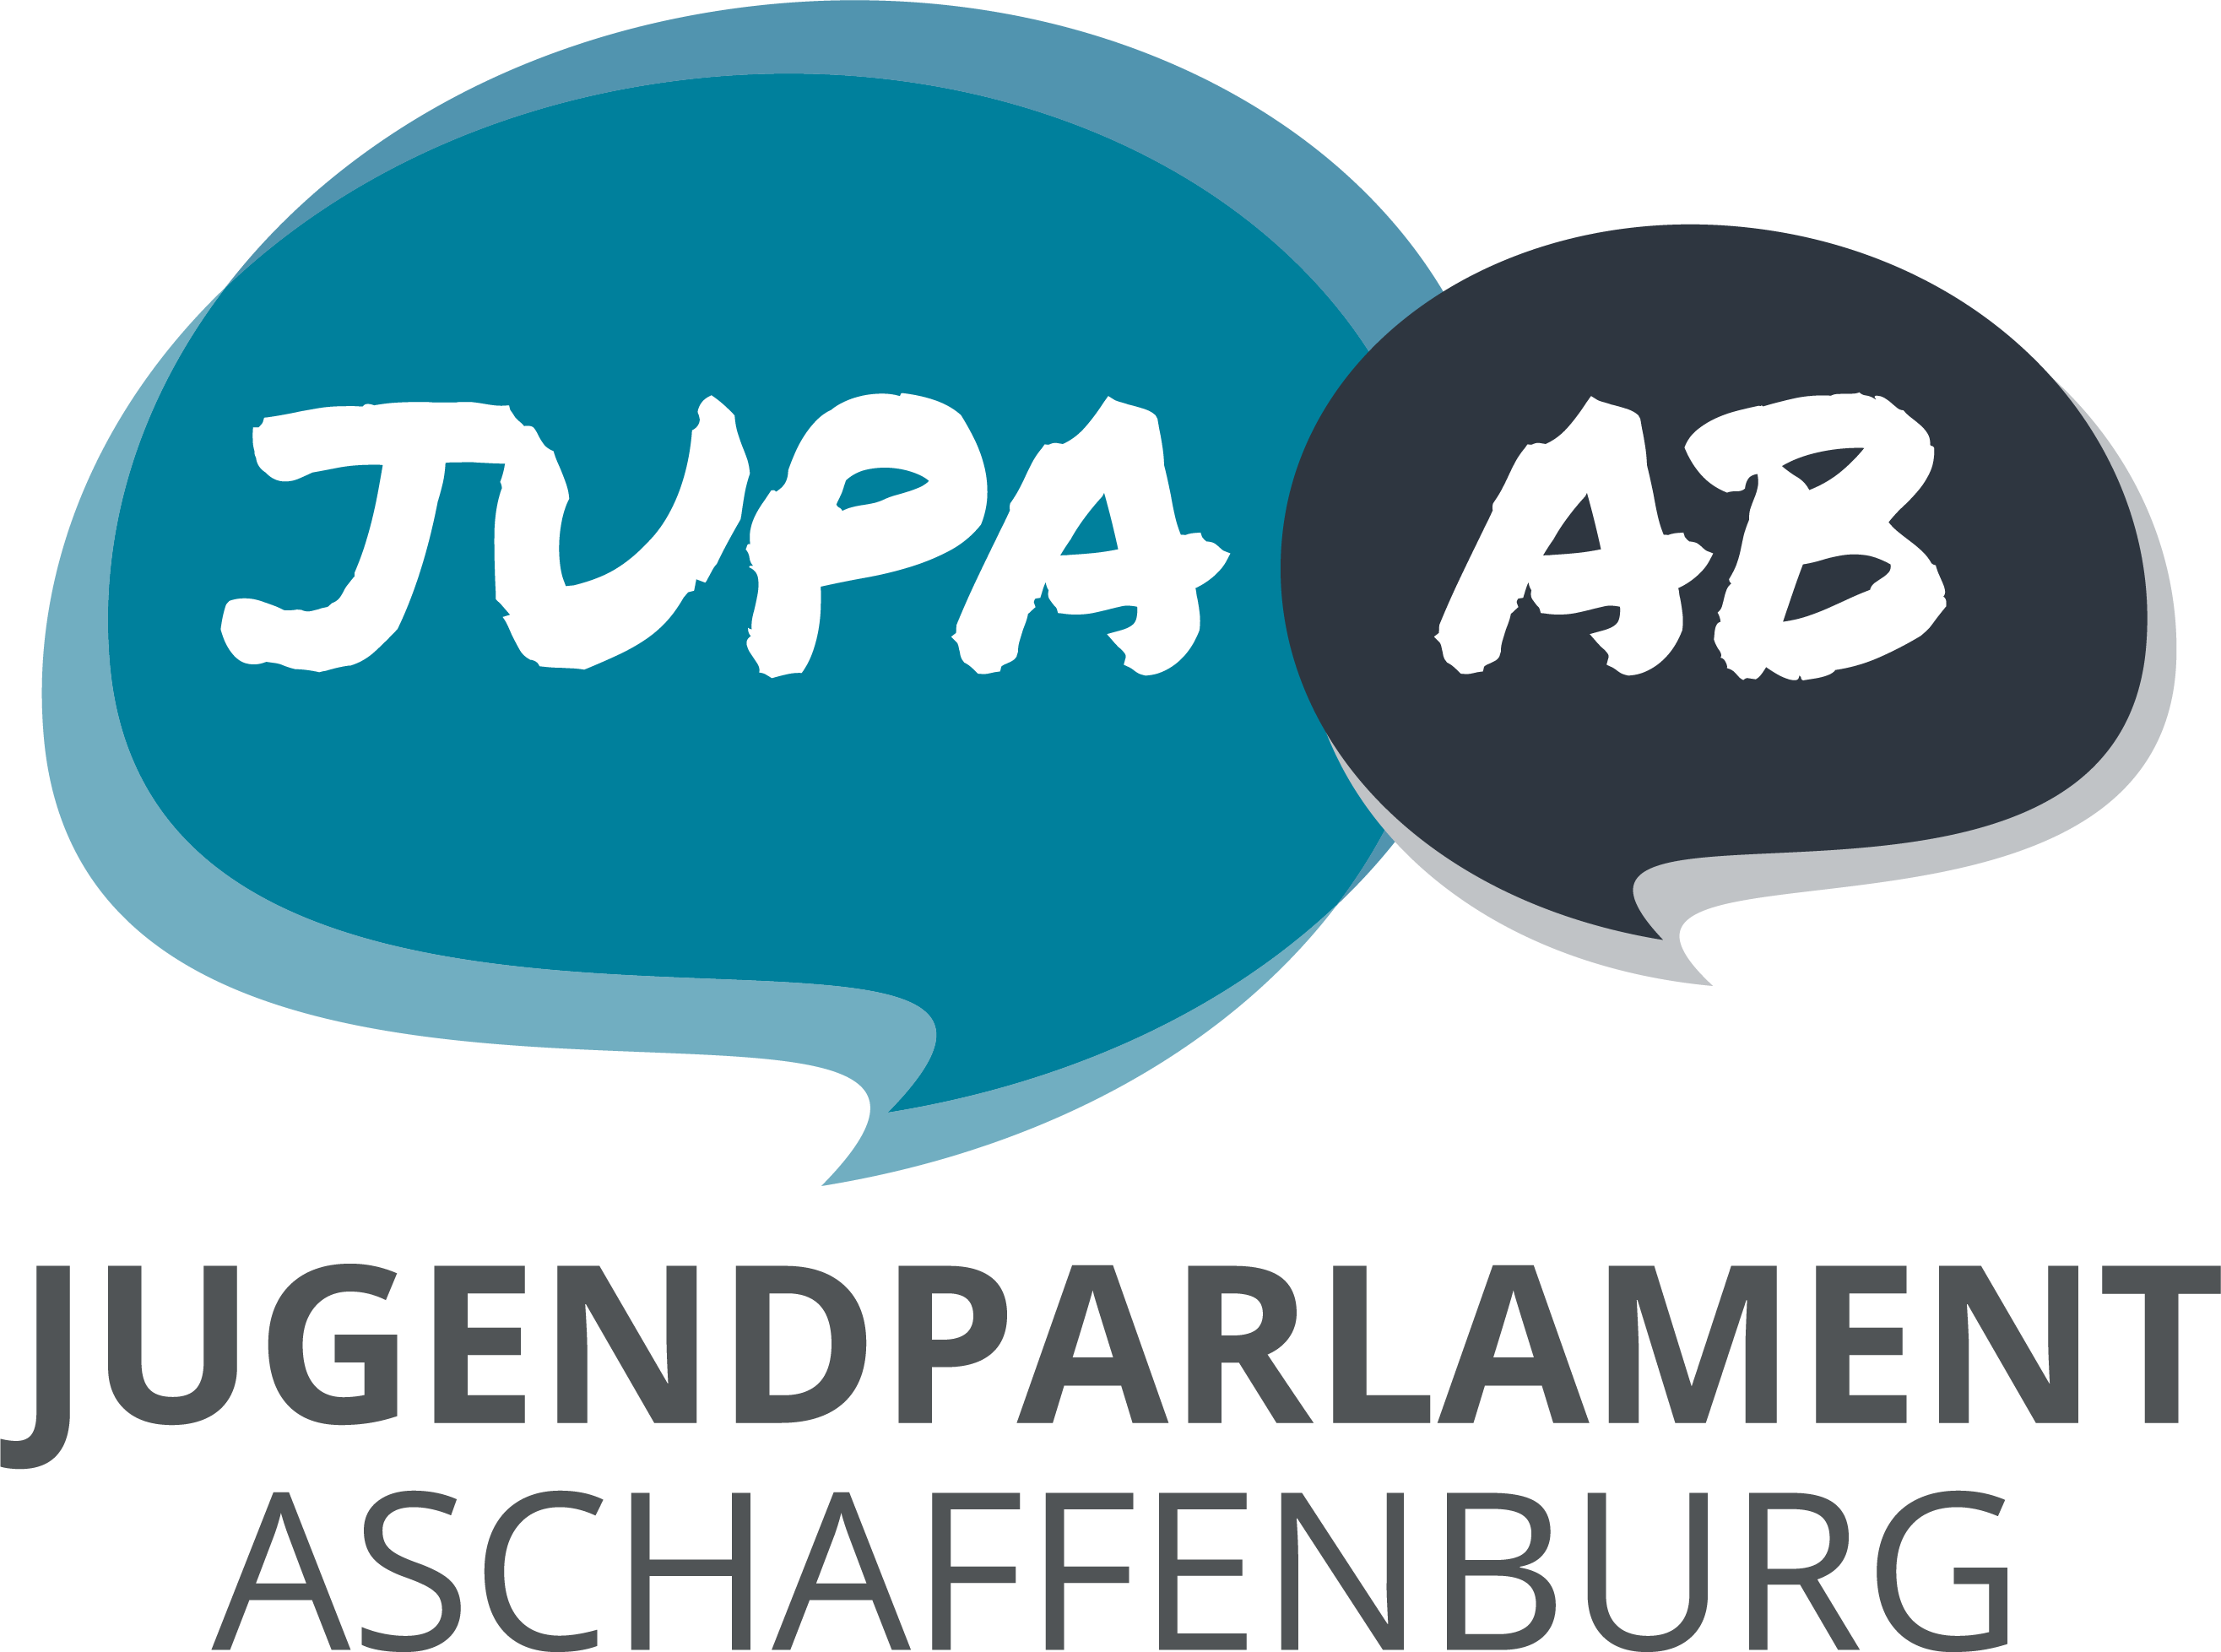 Jugendparlament Aschaffenburg